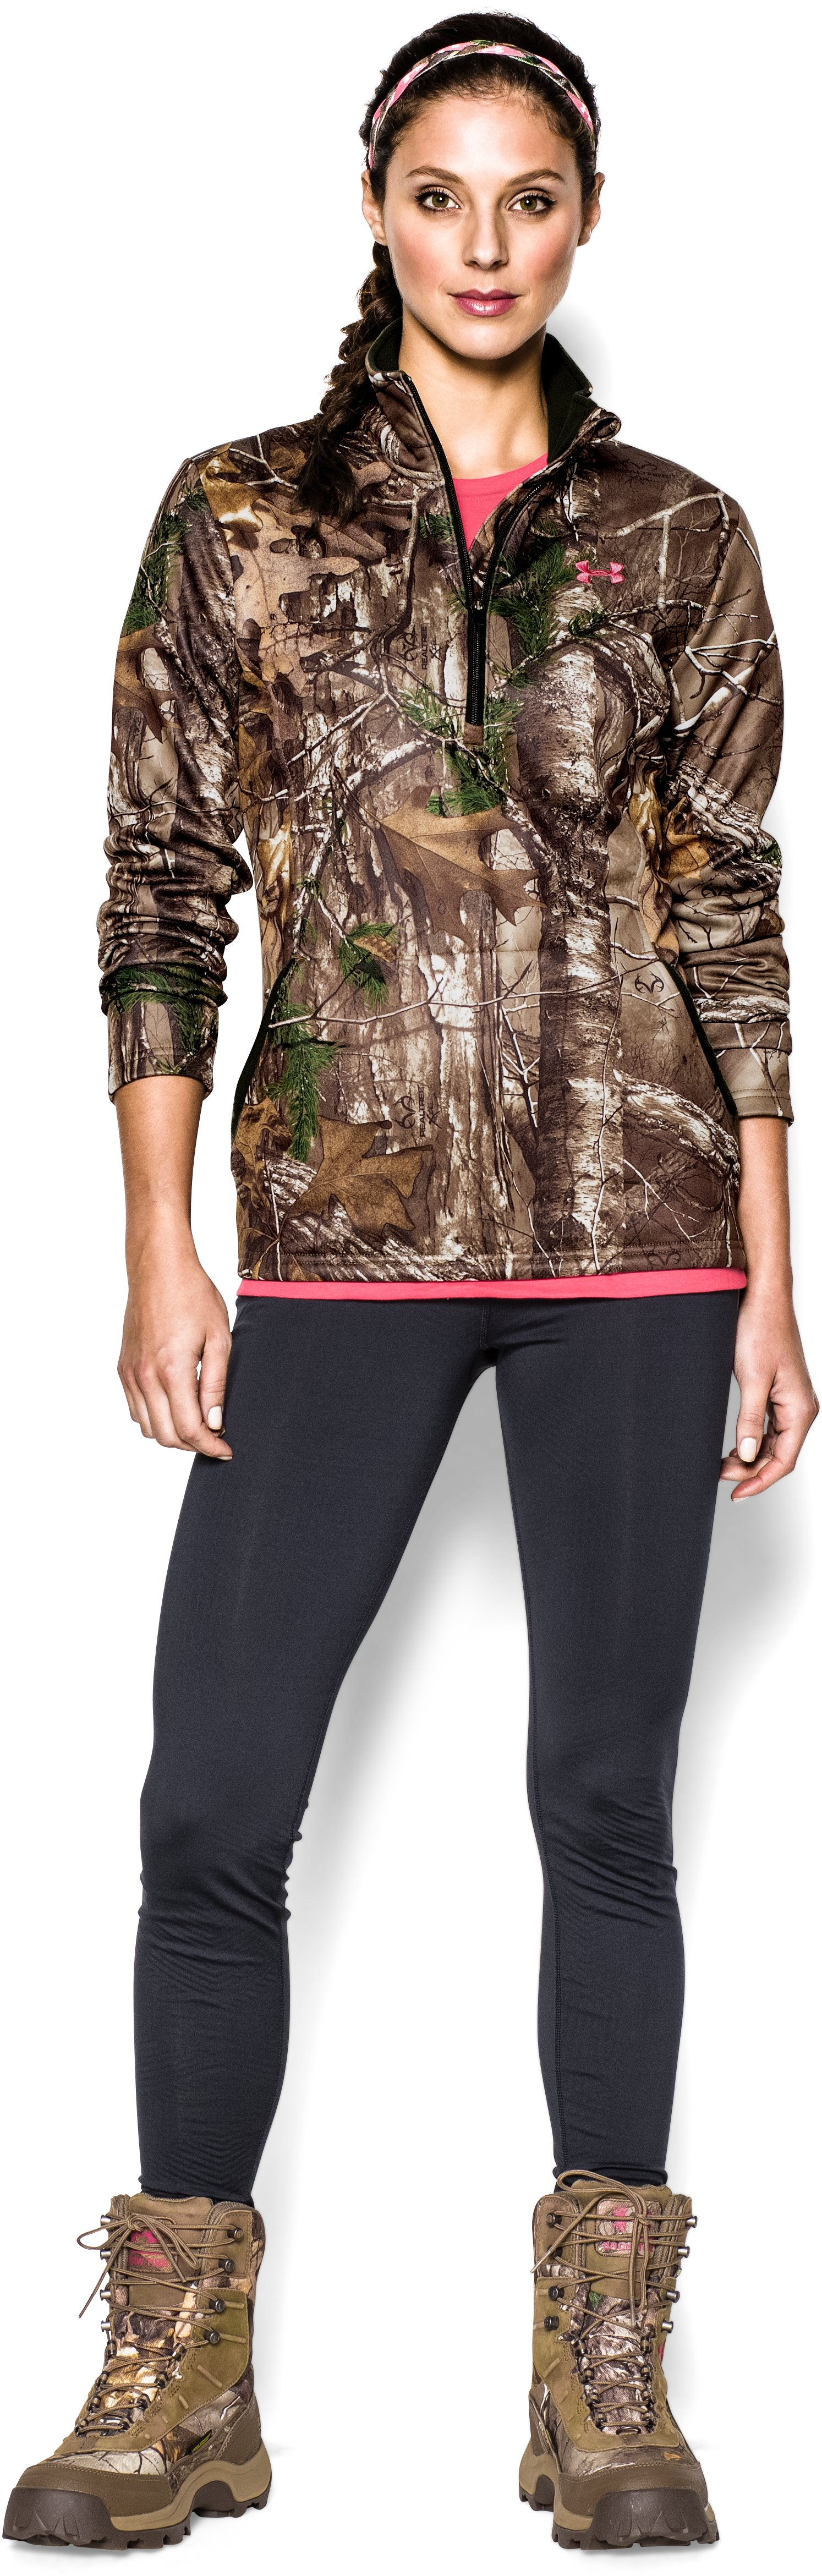 Women's UA Performance ¼ Zip, REALTREE AP-XTRA, zoomed image